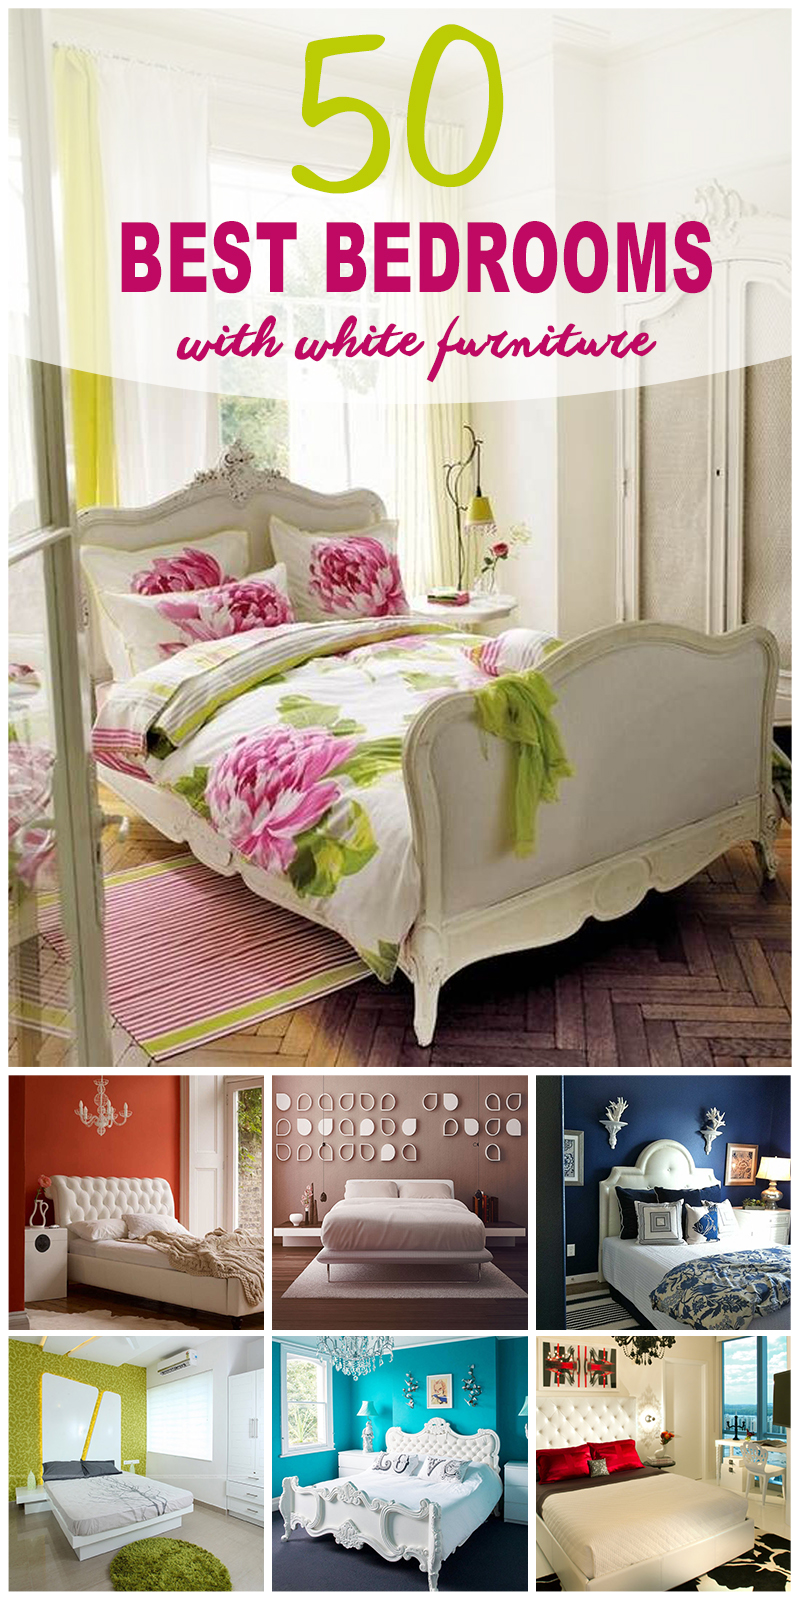 bedrooms with white furniture - Bedroom Ideas White Furniture